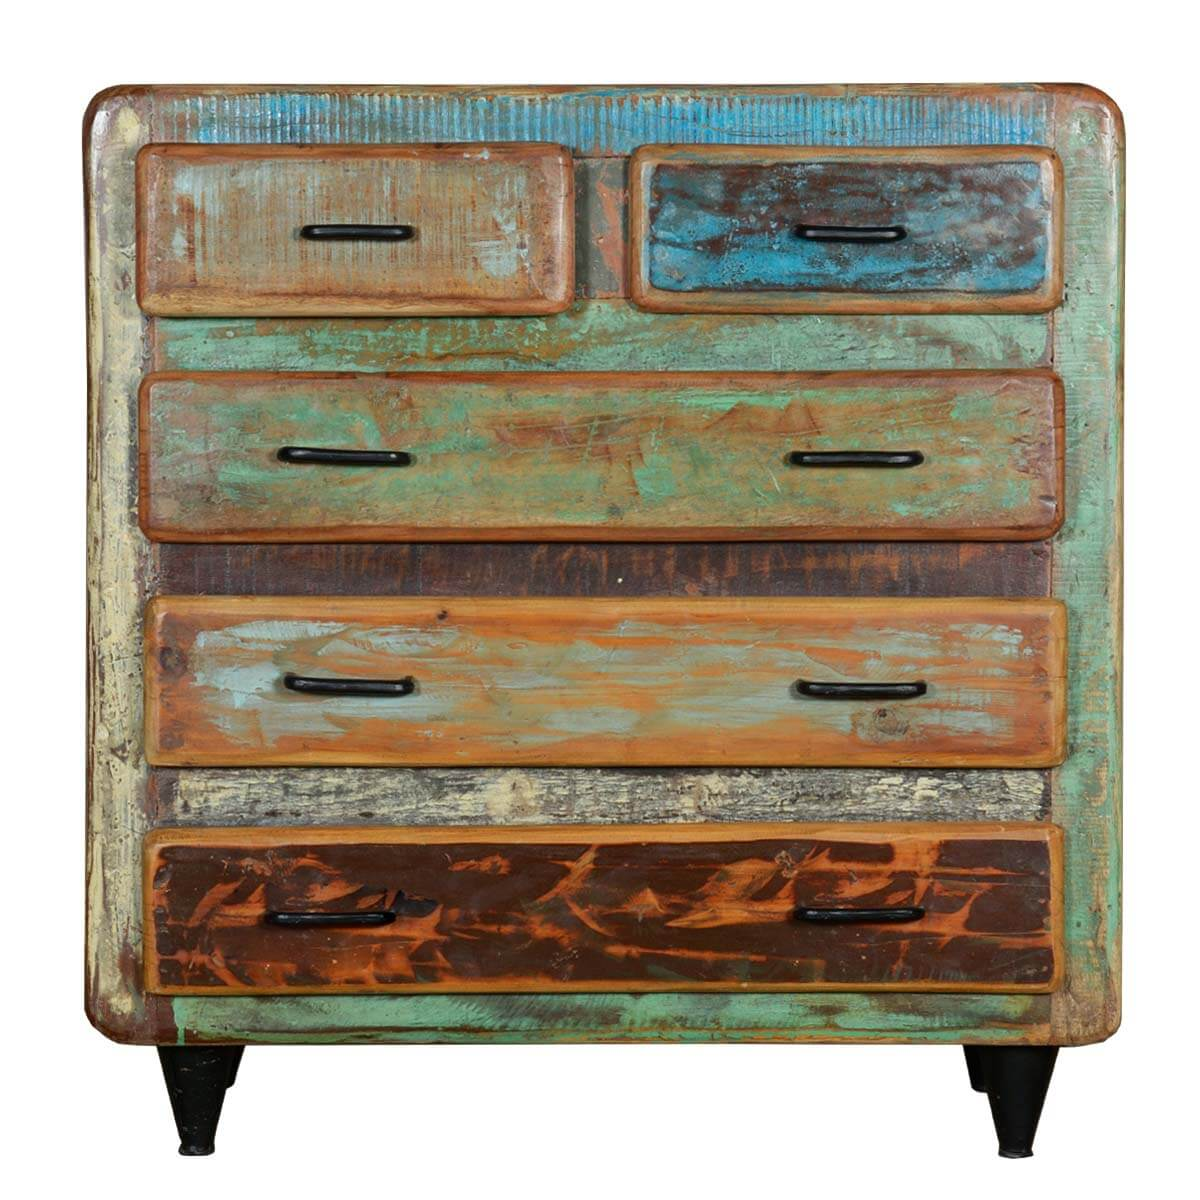 Appalachian Rustic Painted Reclaimed Wood Furniture